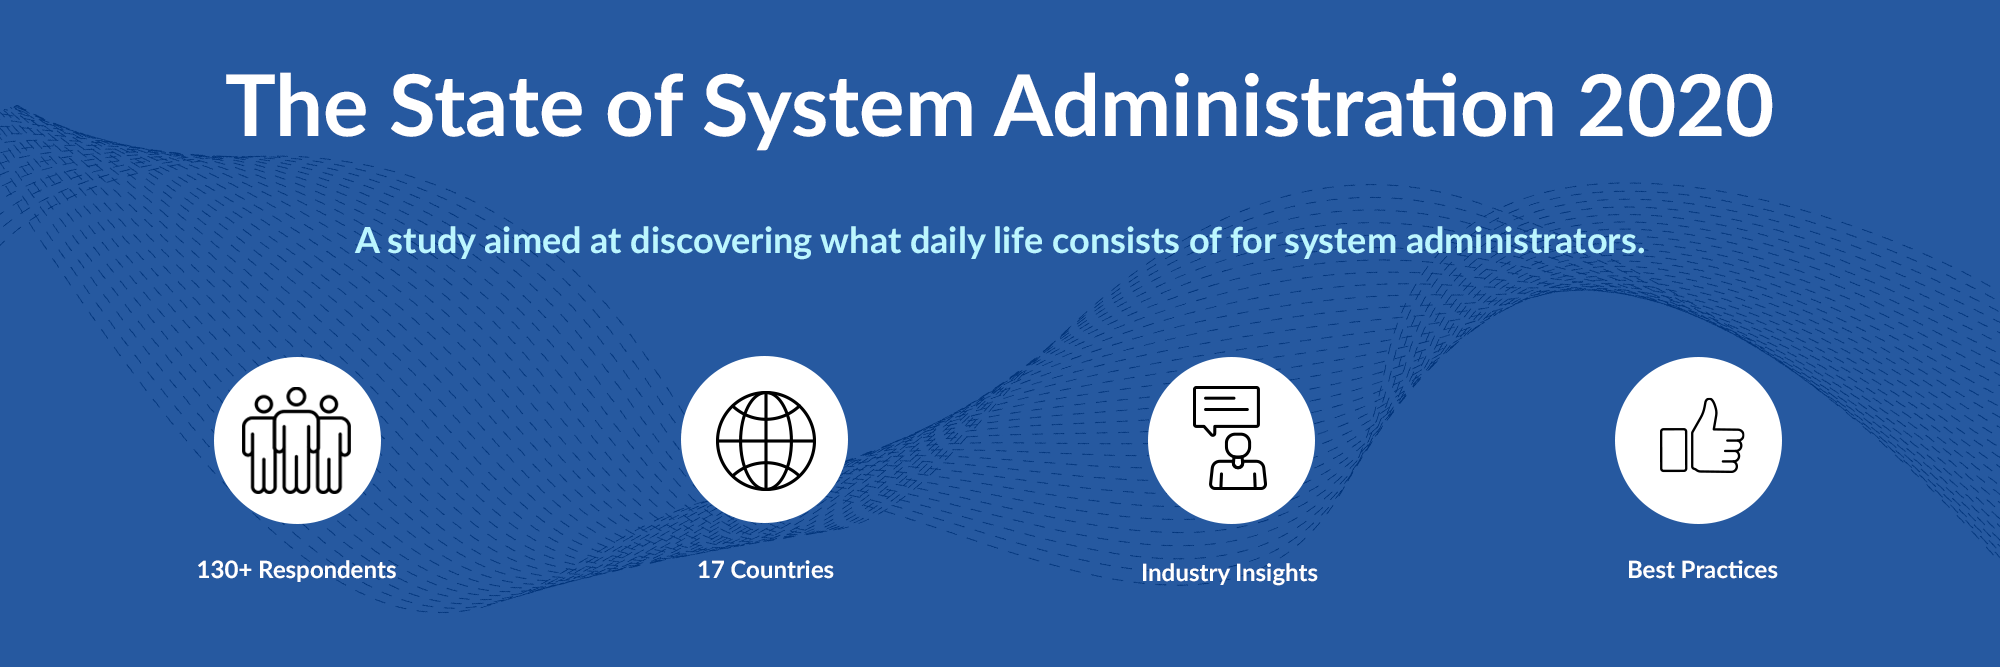 The State of System Administration 2020. A study aimed at discovering what daily life consists of for system administrators.